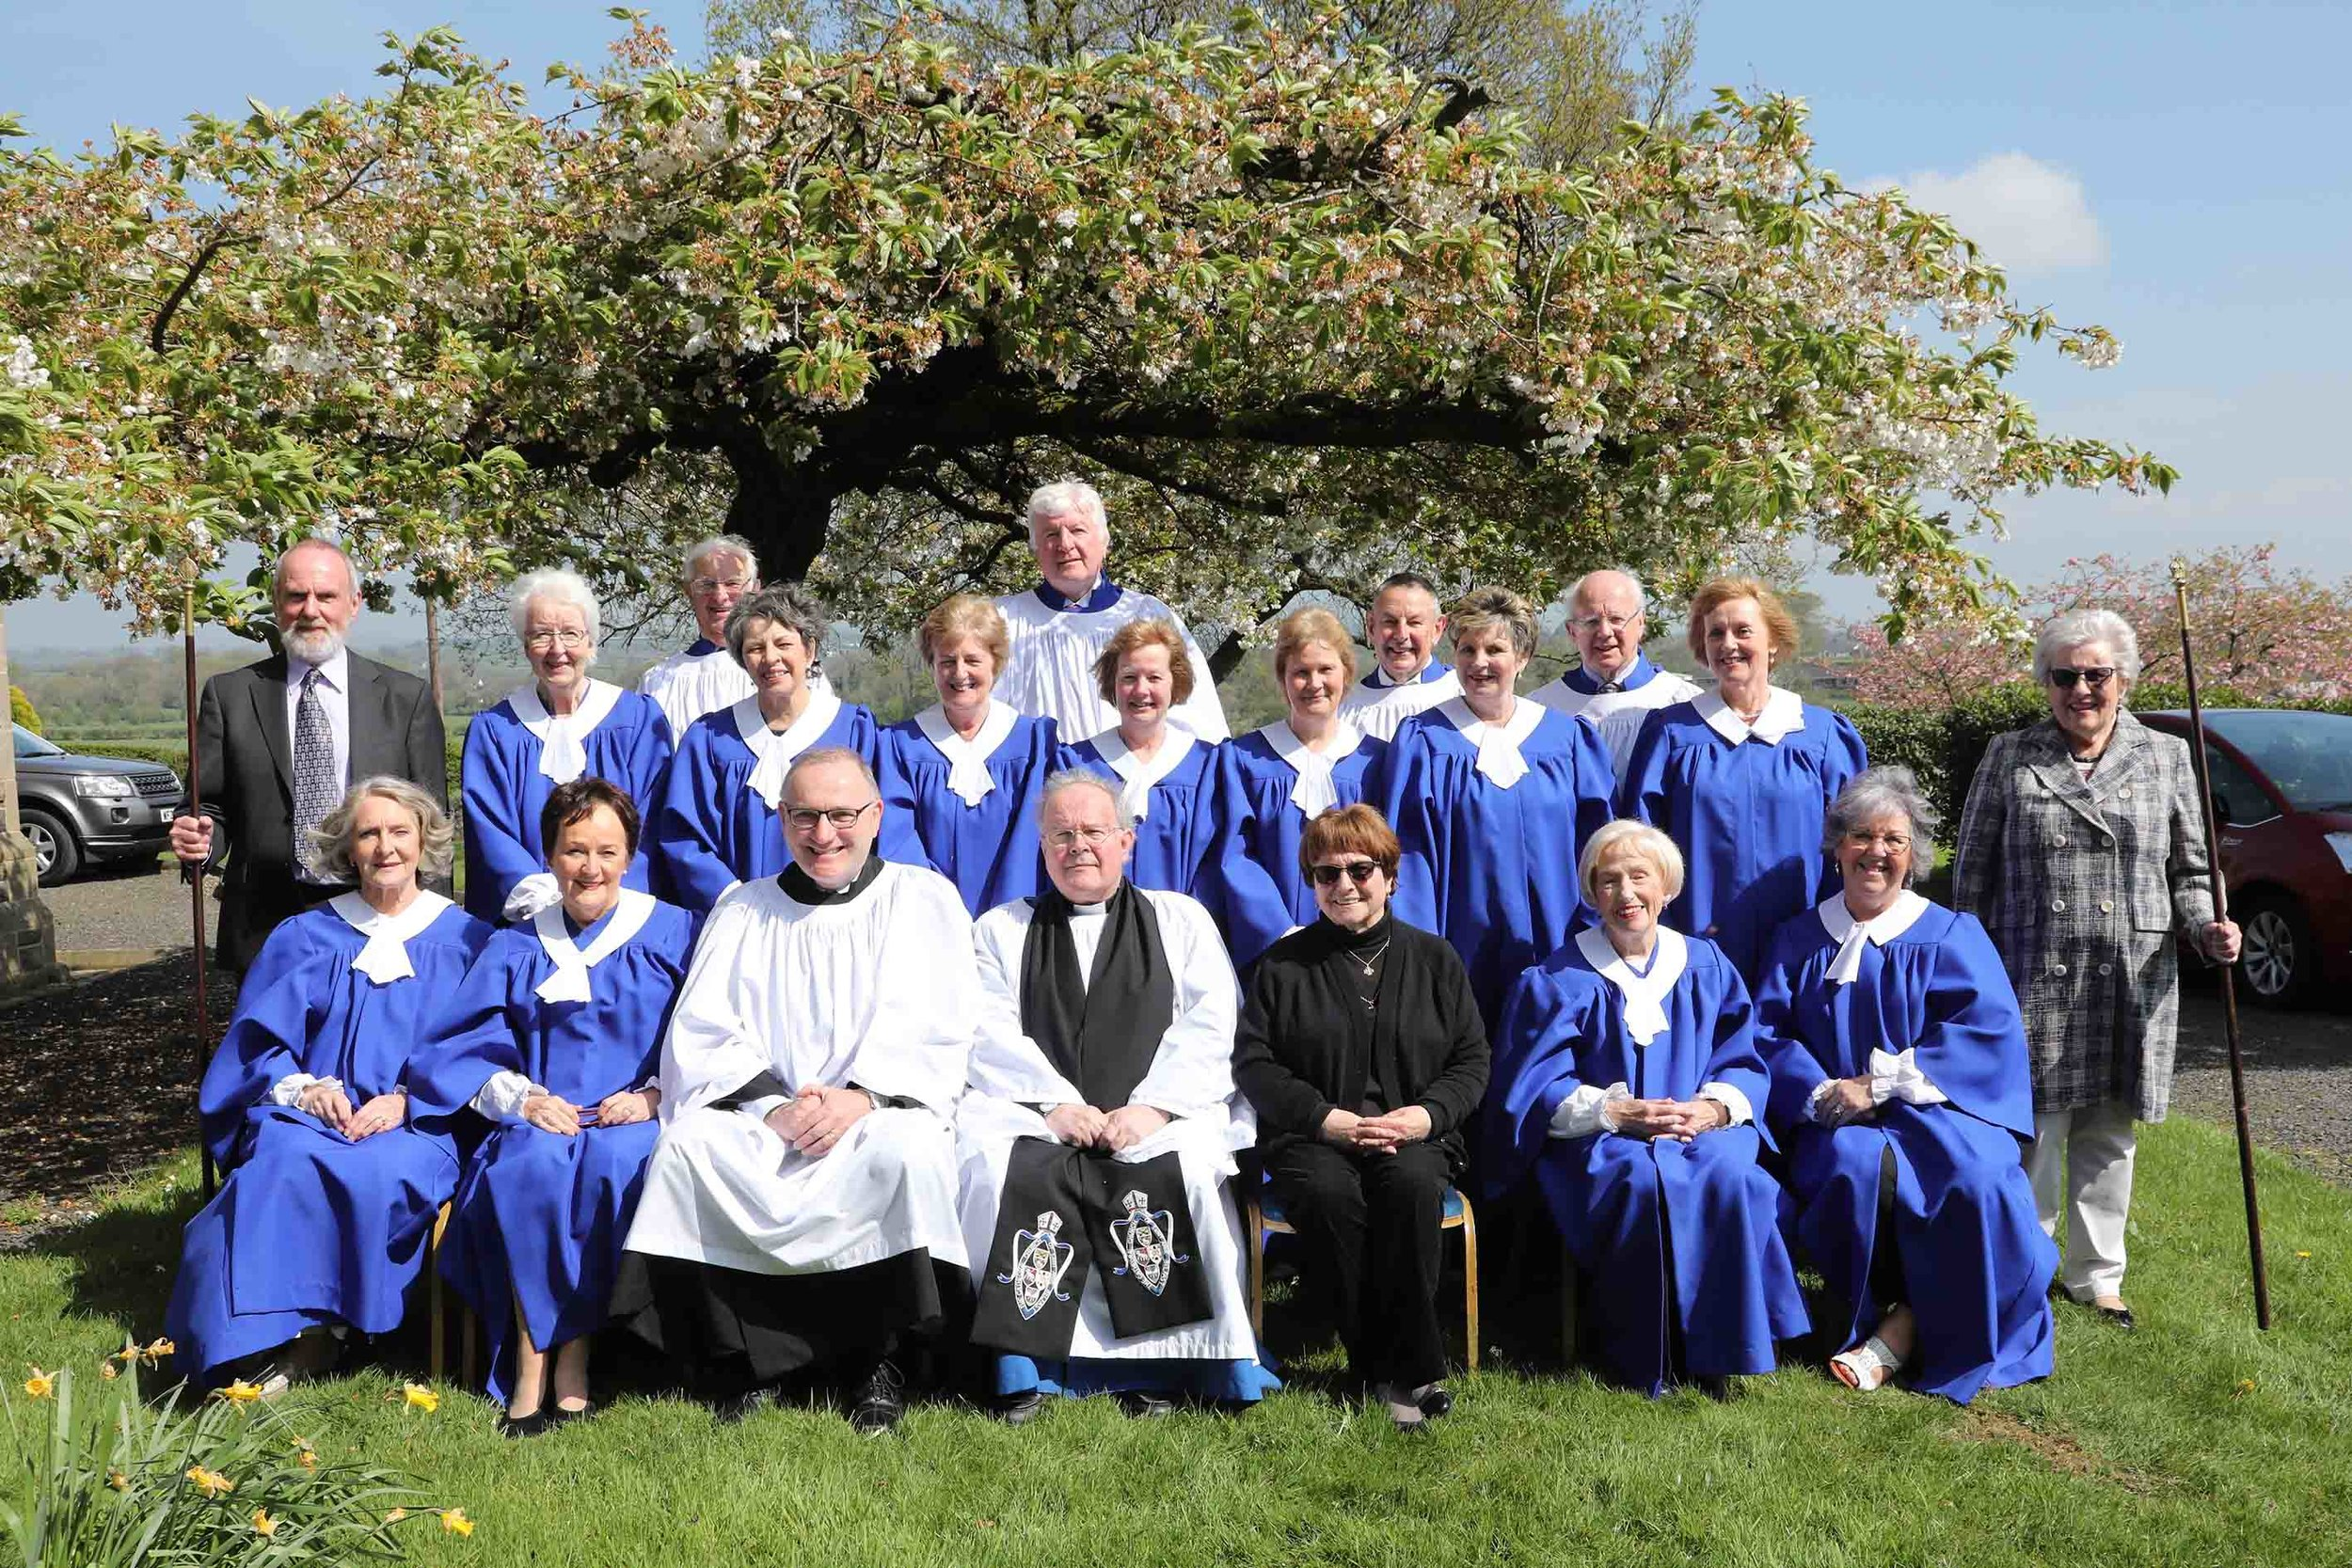 Kilbride Parish Church Choir - Easter Sunday, 21st April 2019